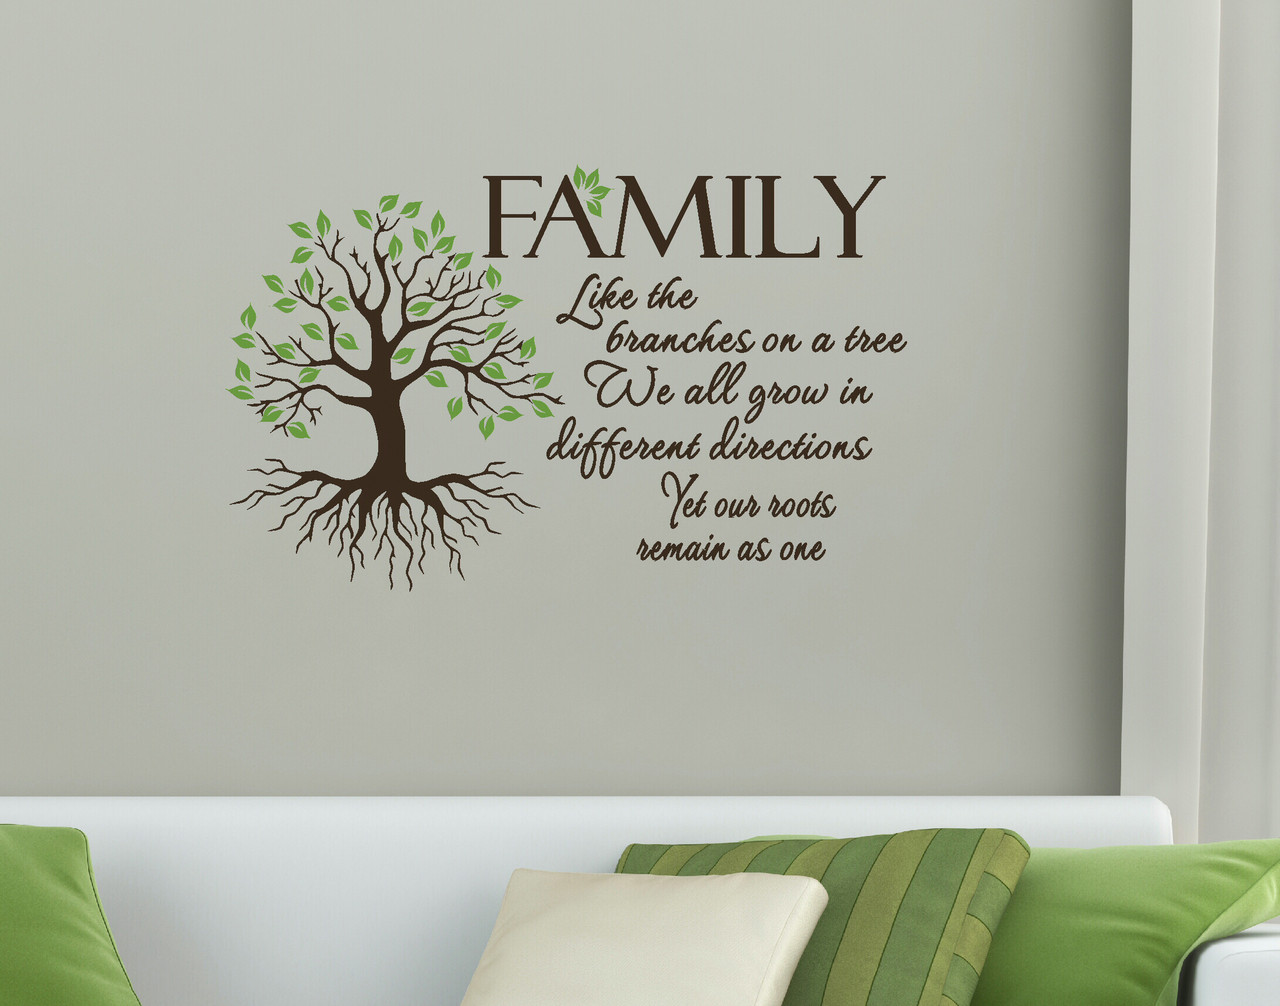 Family quote like branches on a tree wall art vinyl decal loading zoom amipublicfo Image collections